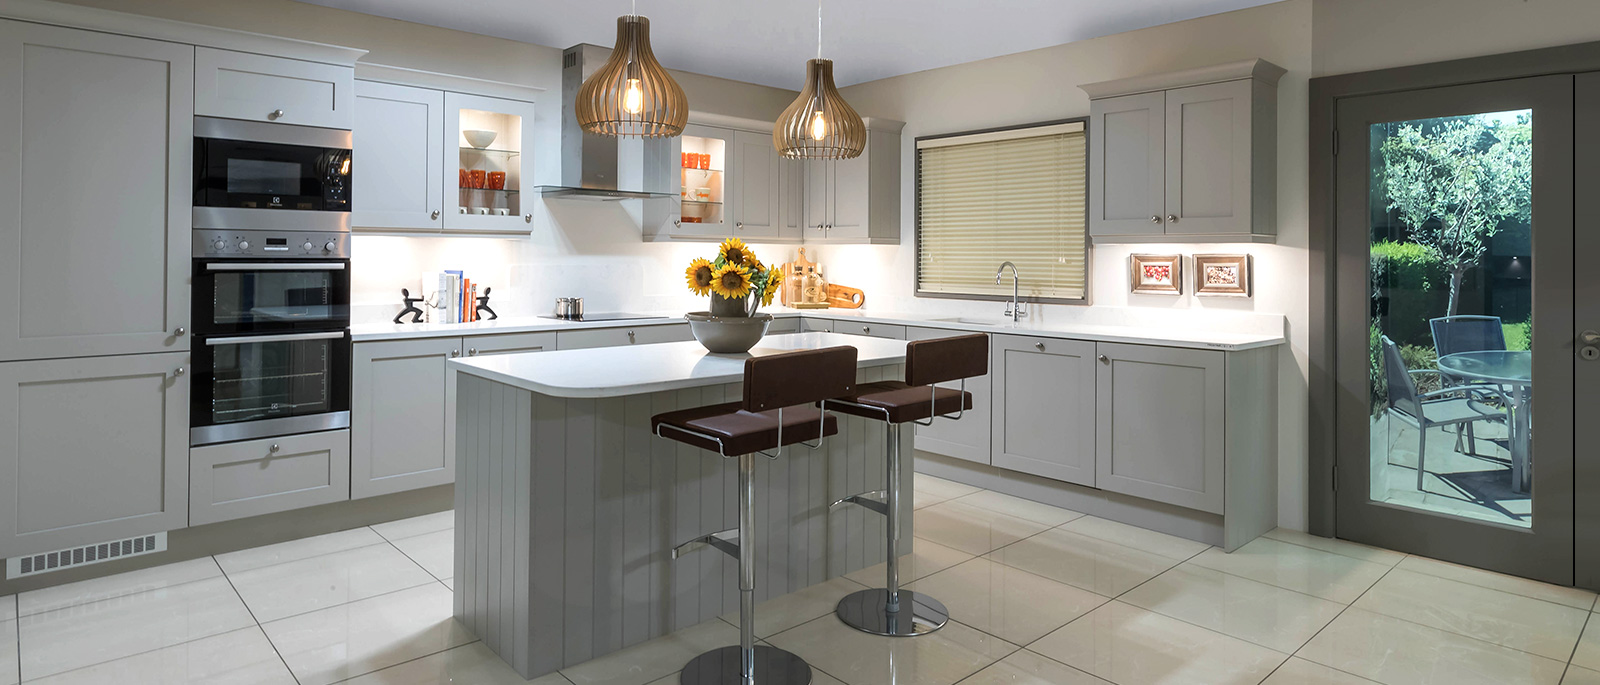 kitchen design ideas ireland kitchens designs best site wiring harness 687